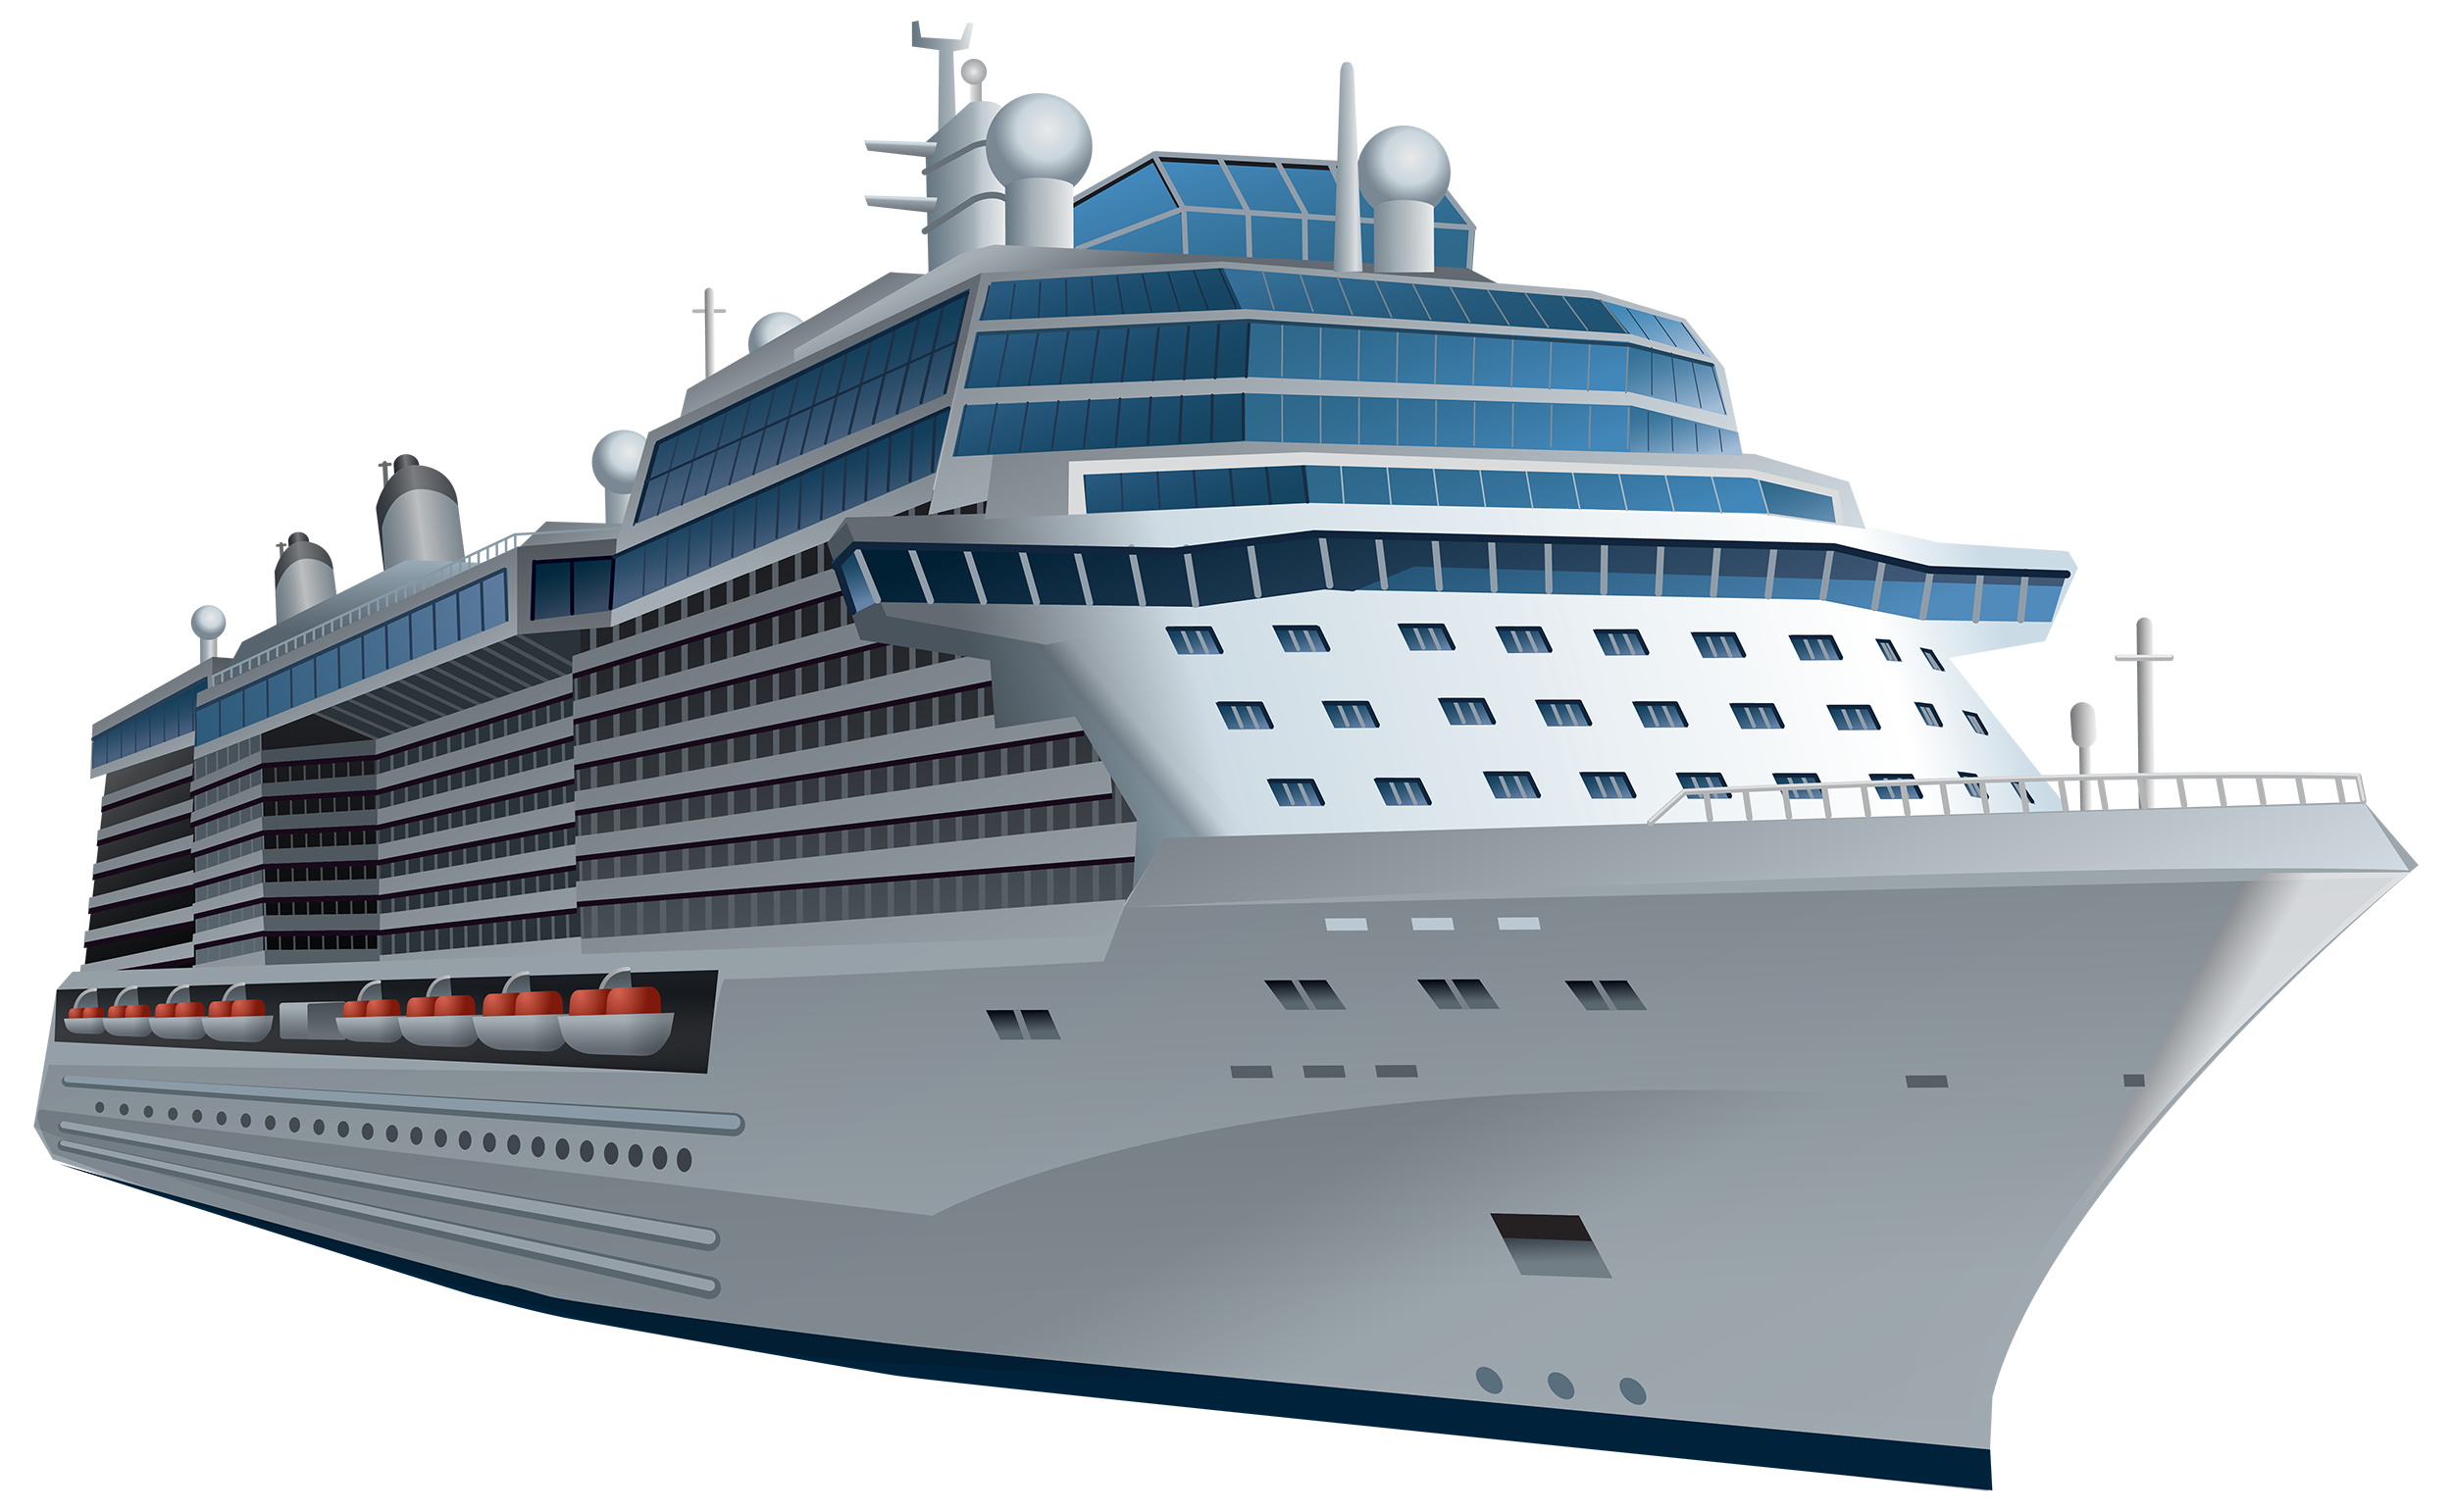 Cruise Ship Clip Art Png Free Cruise Ship Clip Art Png Transparent Images 44595 Pngio